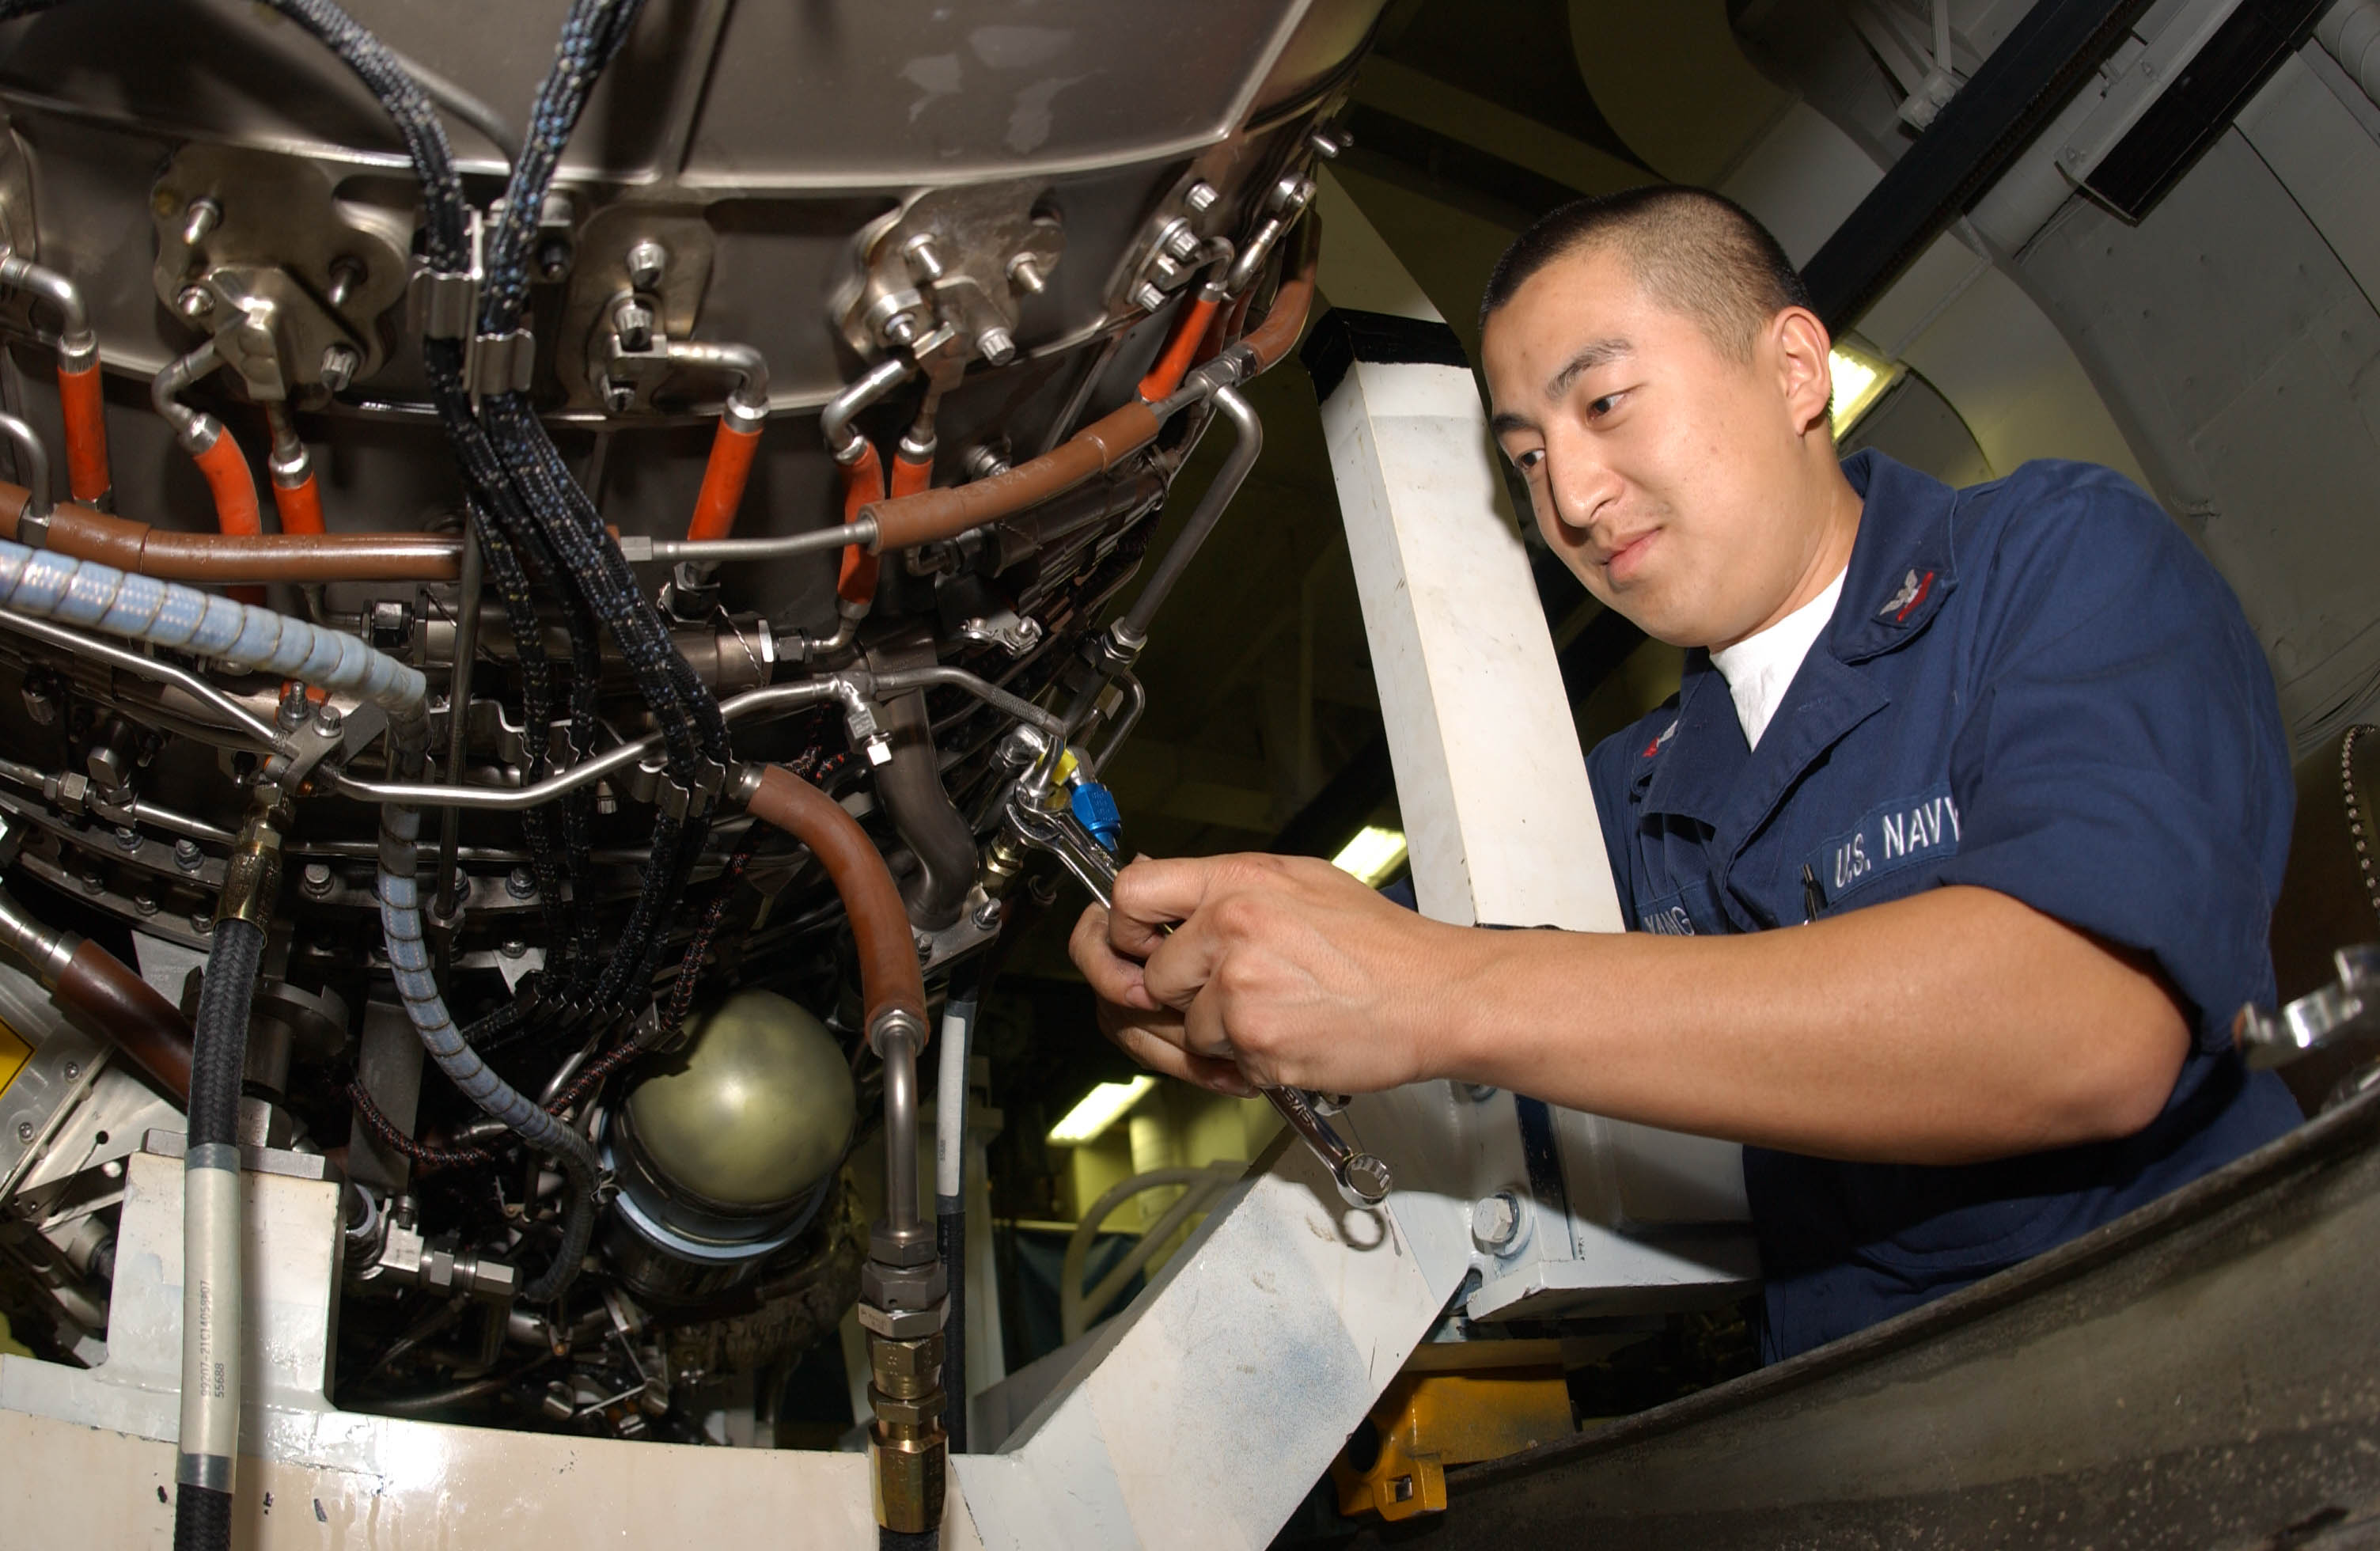 Aircraft Mechanic colleges and what they are known for